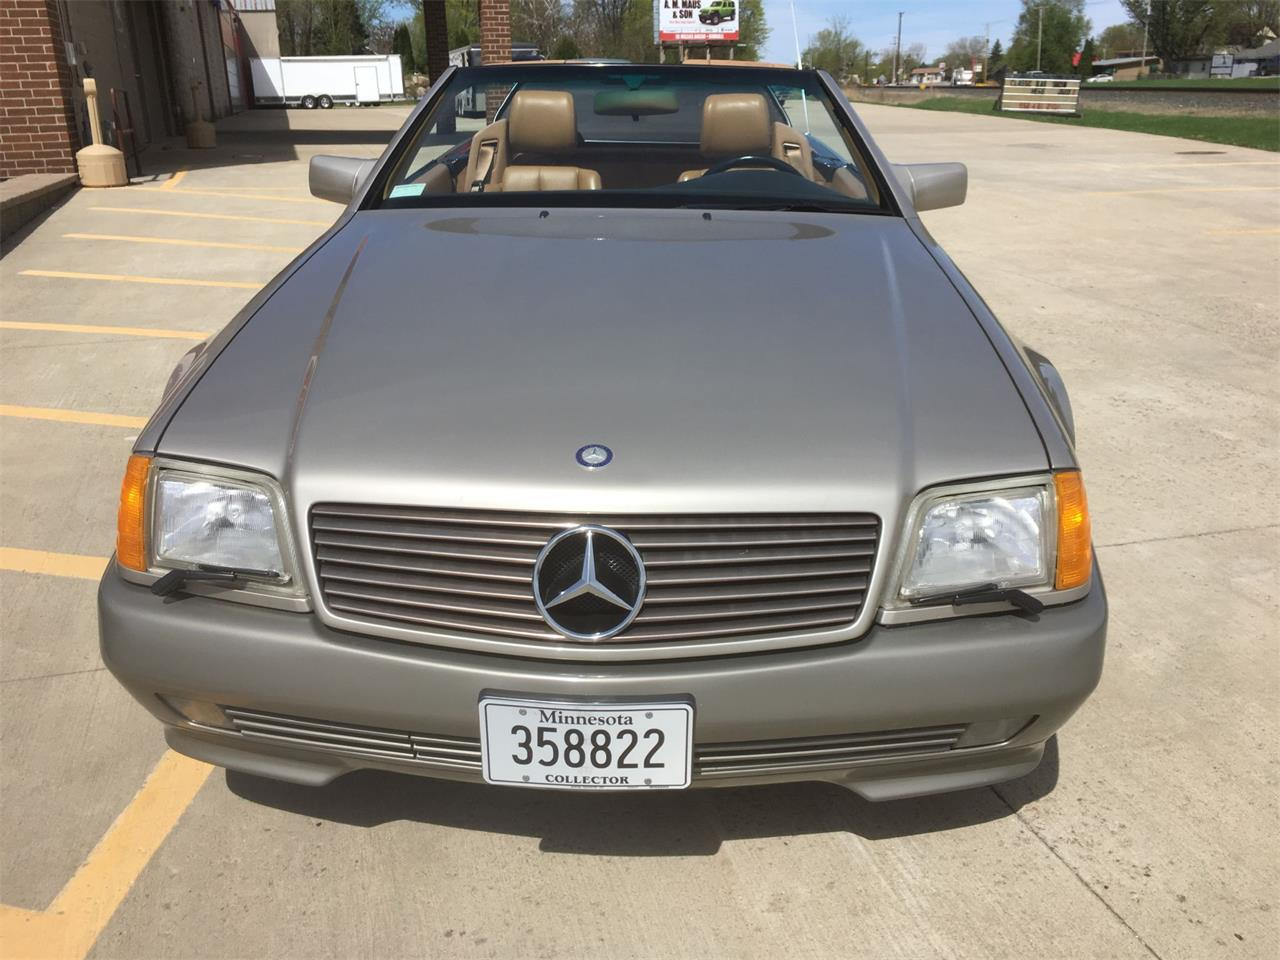 1991 Mercedes-Benz 500 (CC-1103954) for sale in Annandale, Minnesota